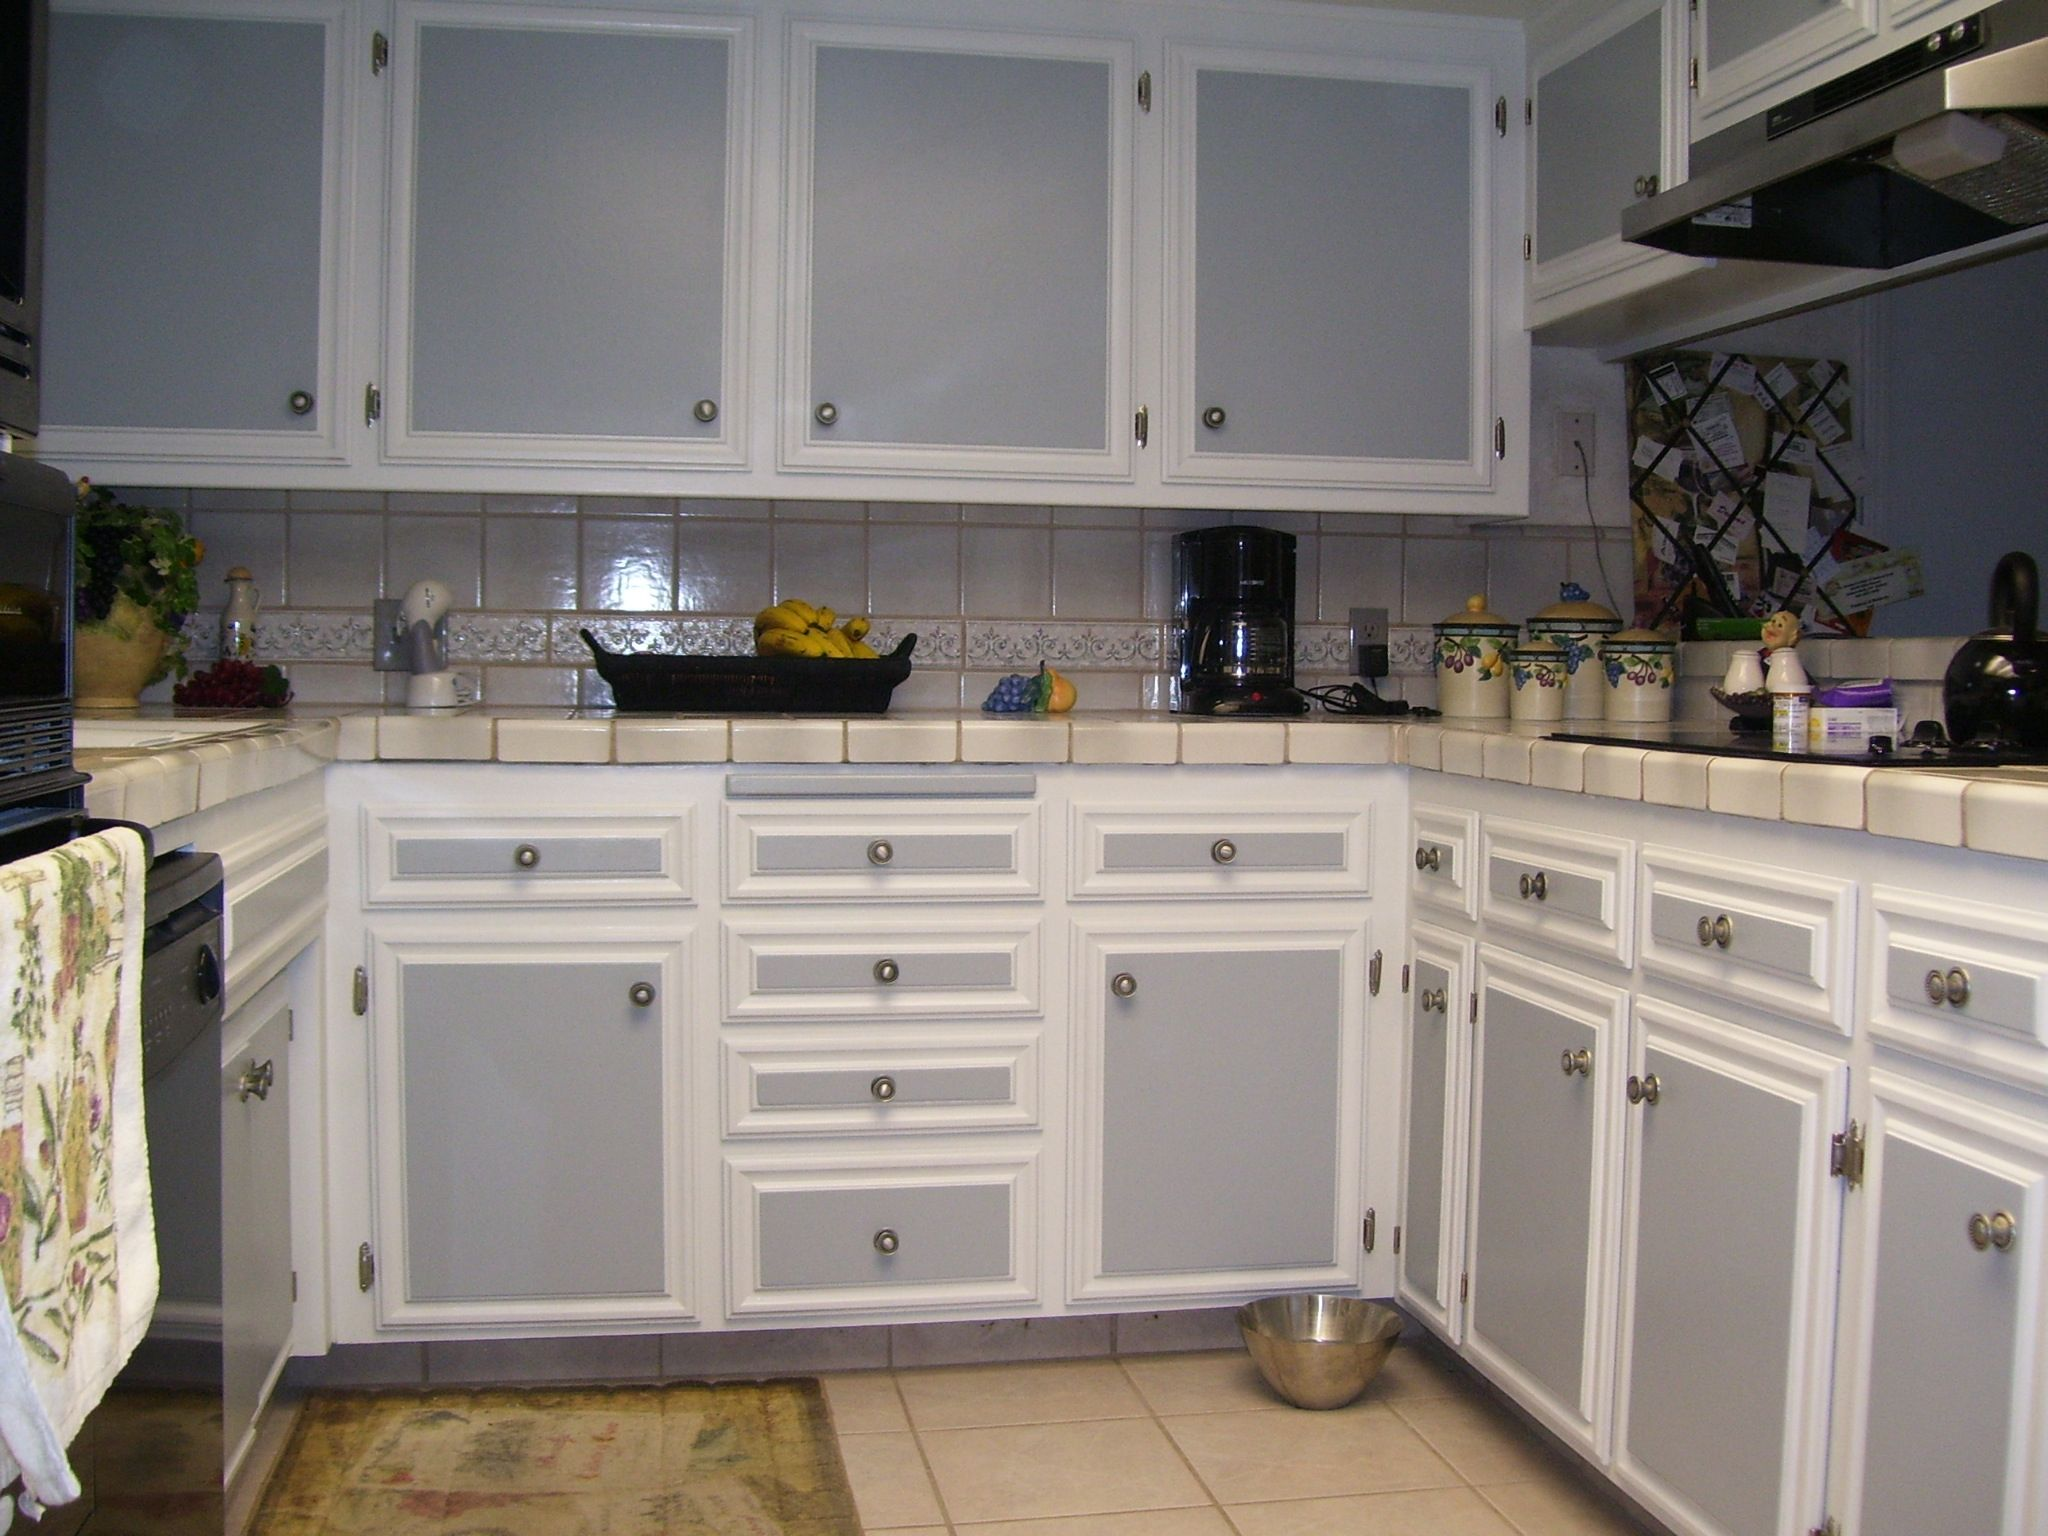 Gray Kitchen Walls With Cream Cabinets gray red wooden cabinet with many drawers placed on the cream wall